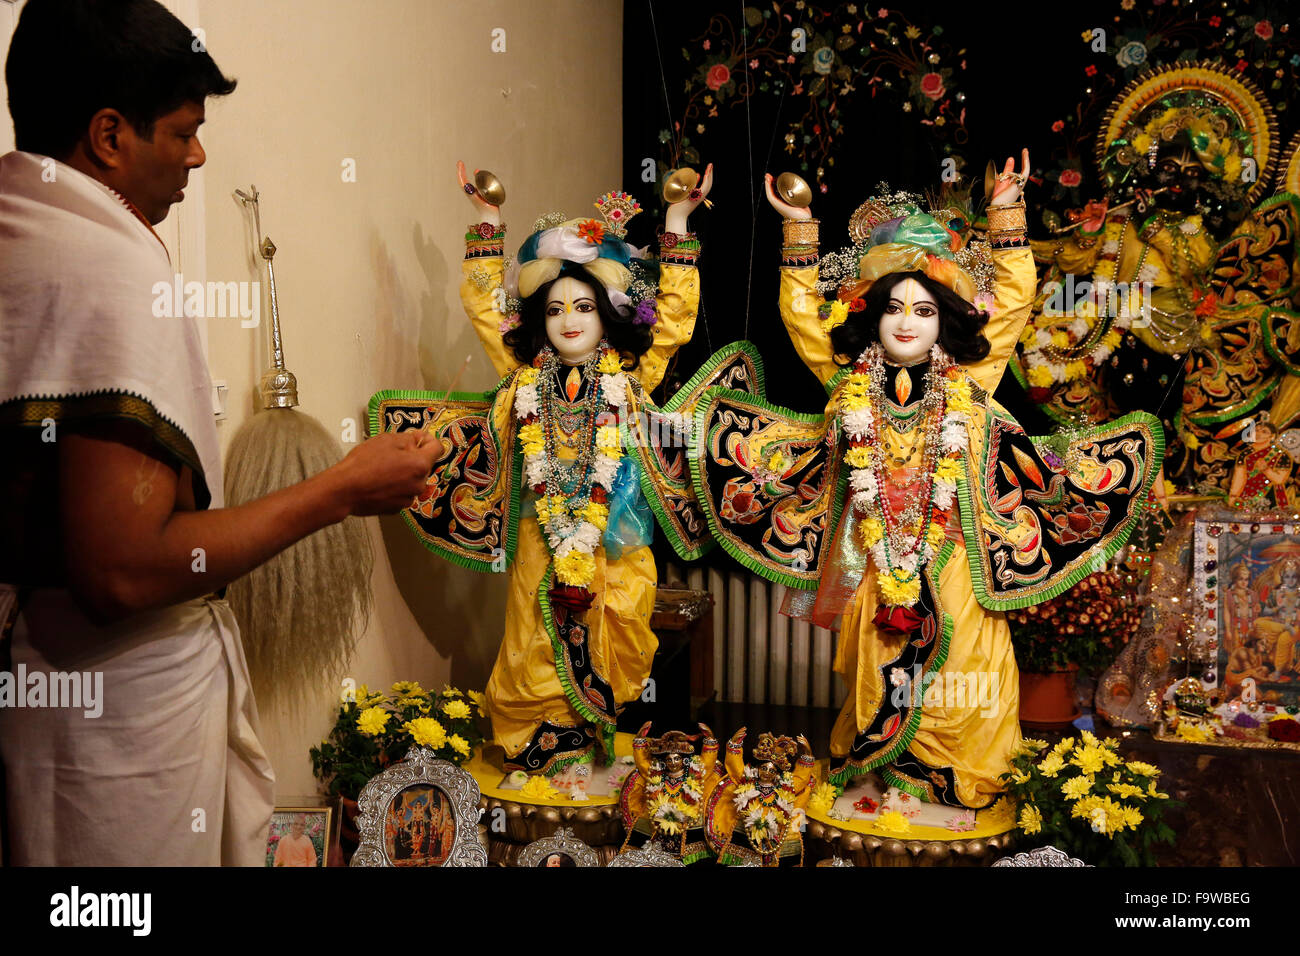 Celebration of Diwali festival in an ISKCON temple. The statues depict Gaura-Nitai Stock Photo